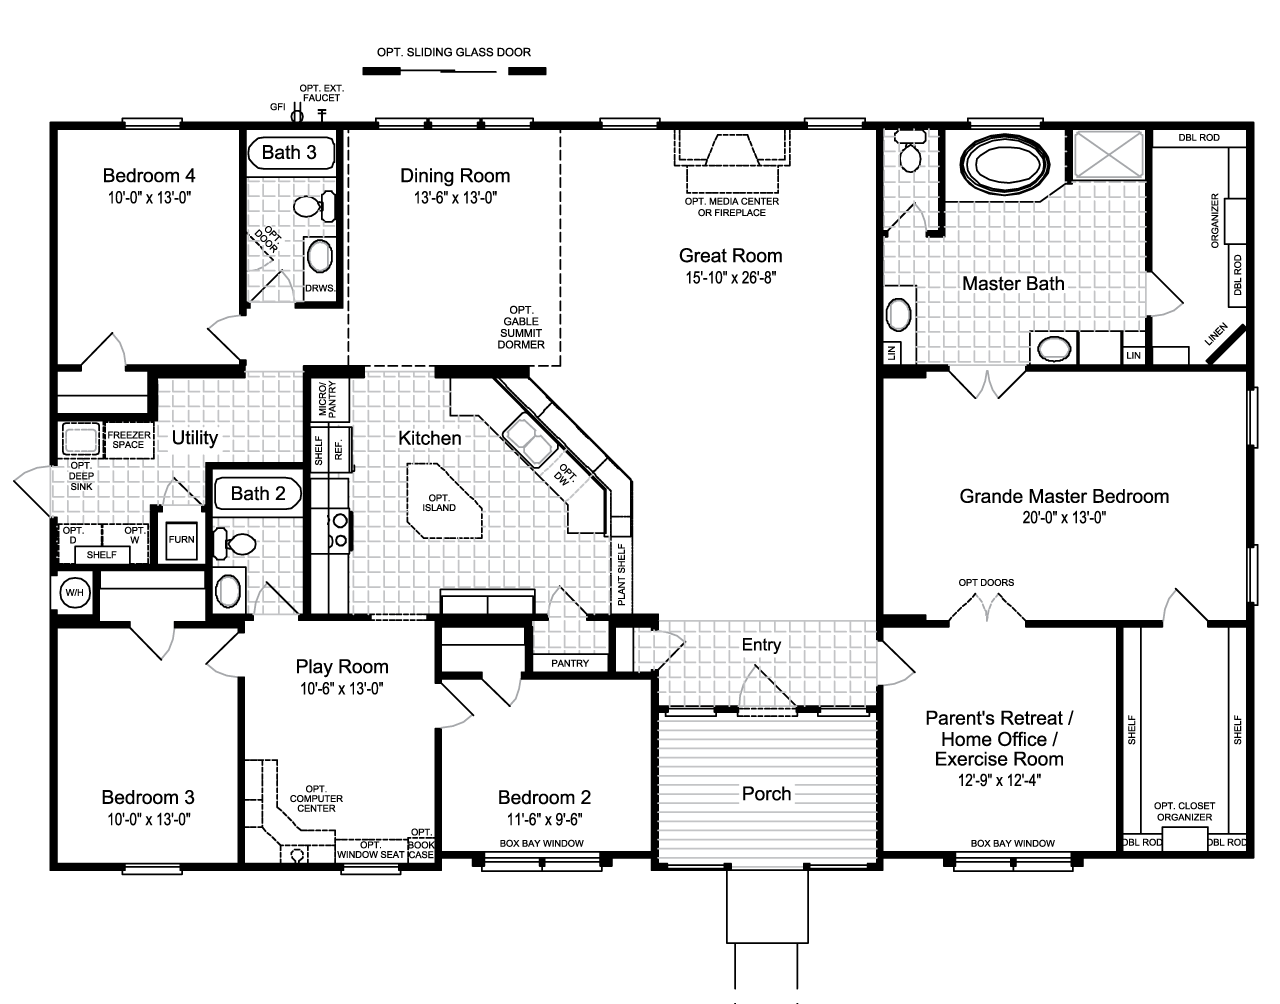 The hacienda ii vr41664a manufactured home floor plan or House floor plan design